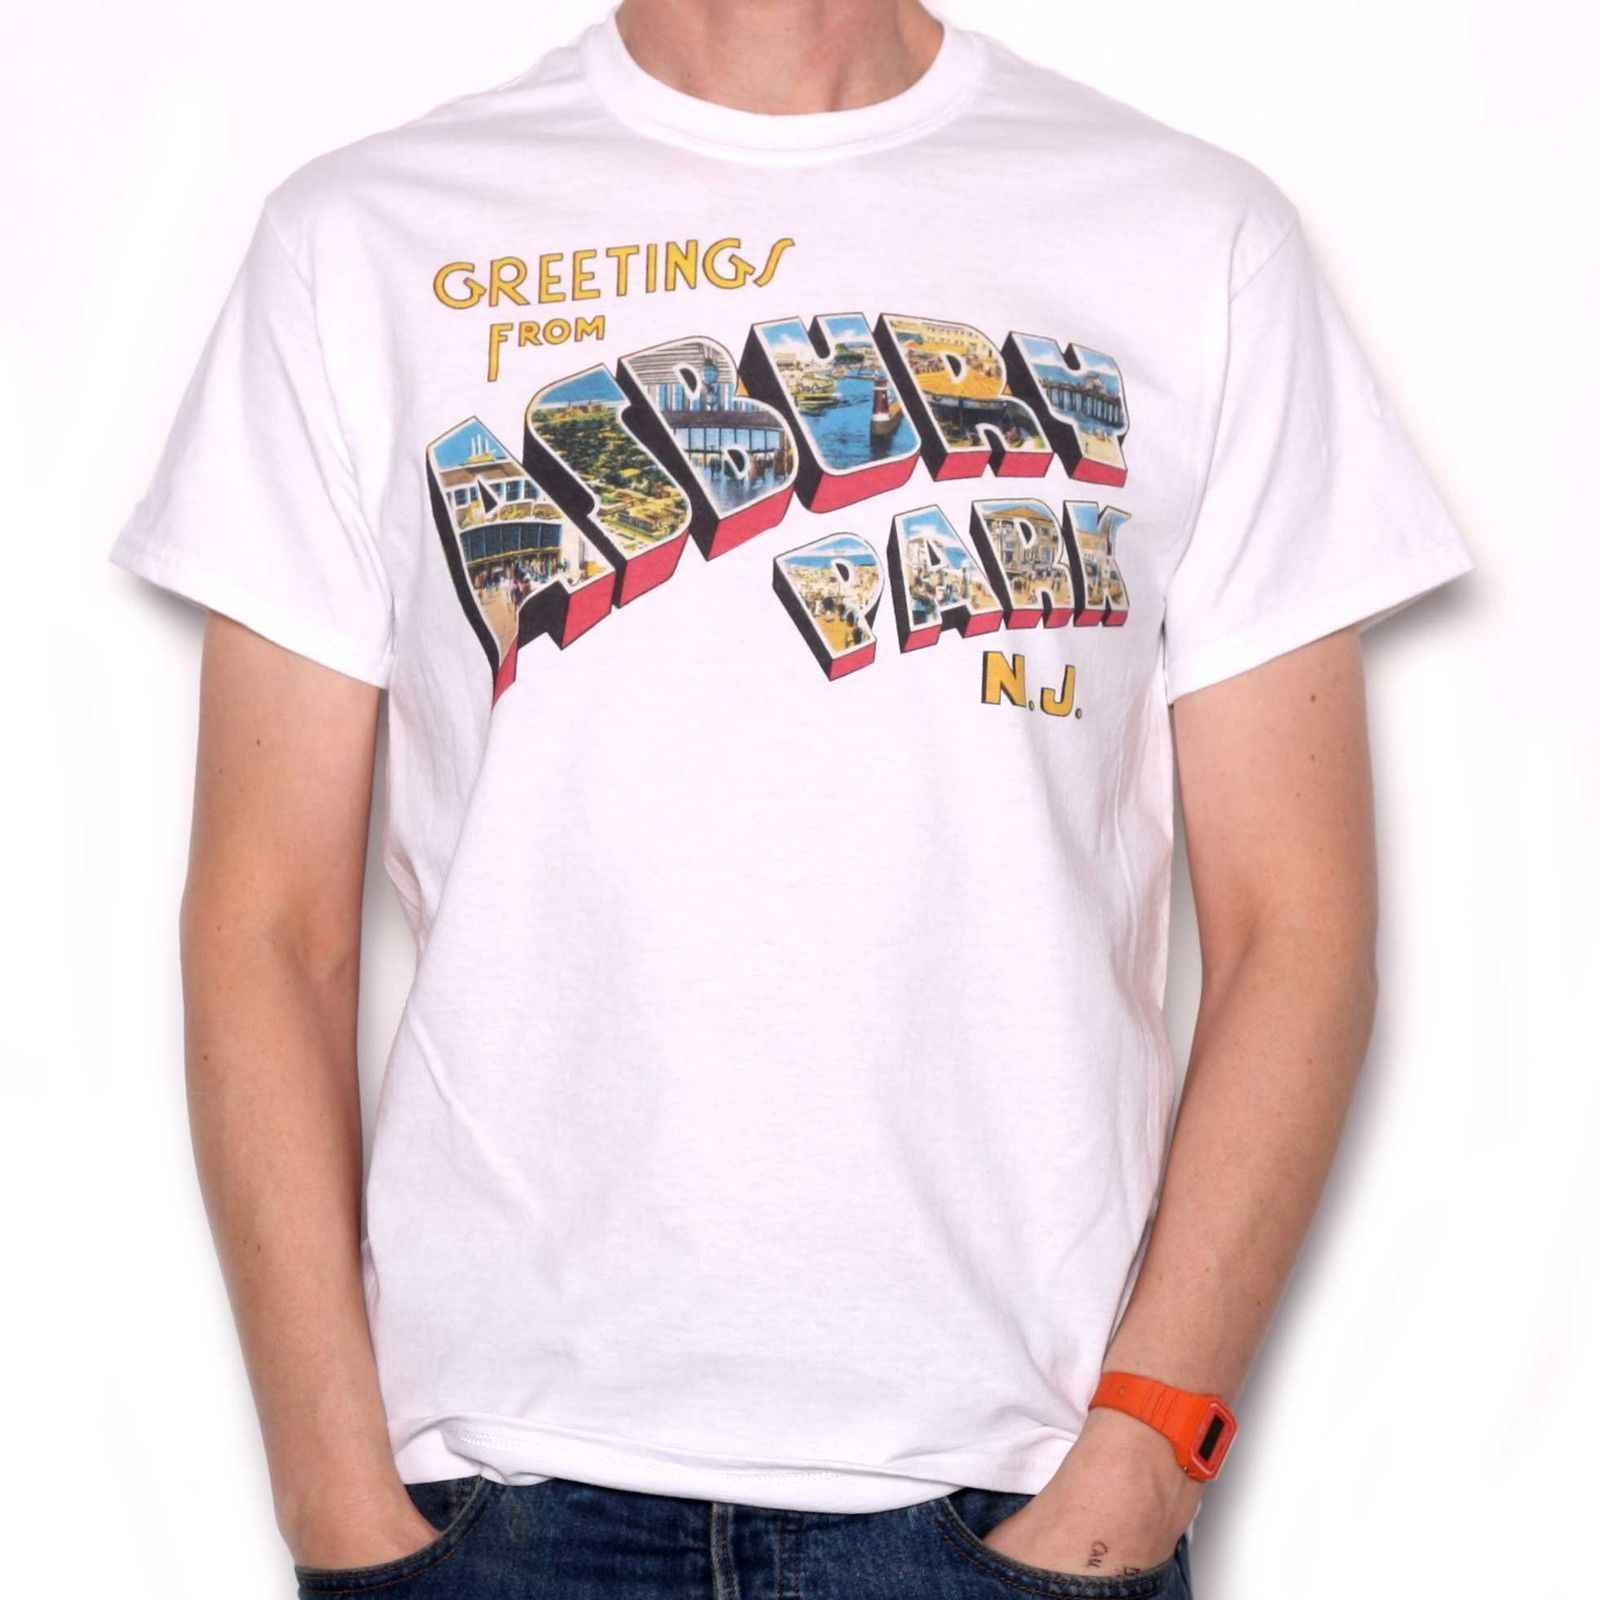 Greetings From Asbury Park T Shirt - Full Colour As Used by Springsteen custom printed tshirt,hip hop funny tee,2019 hot tees